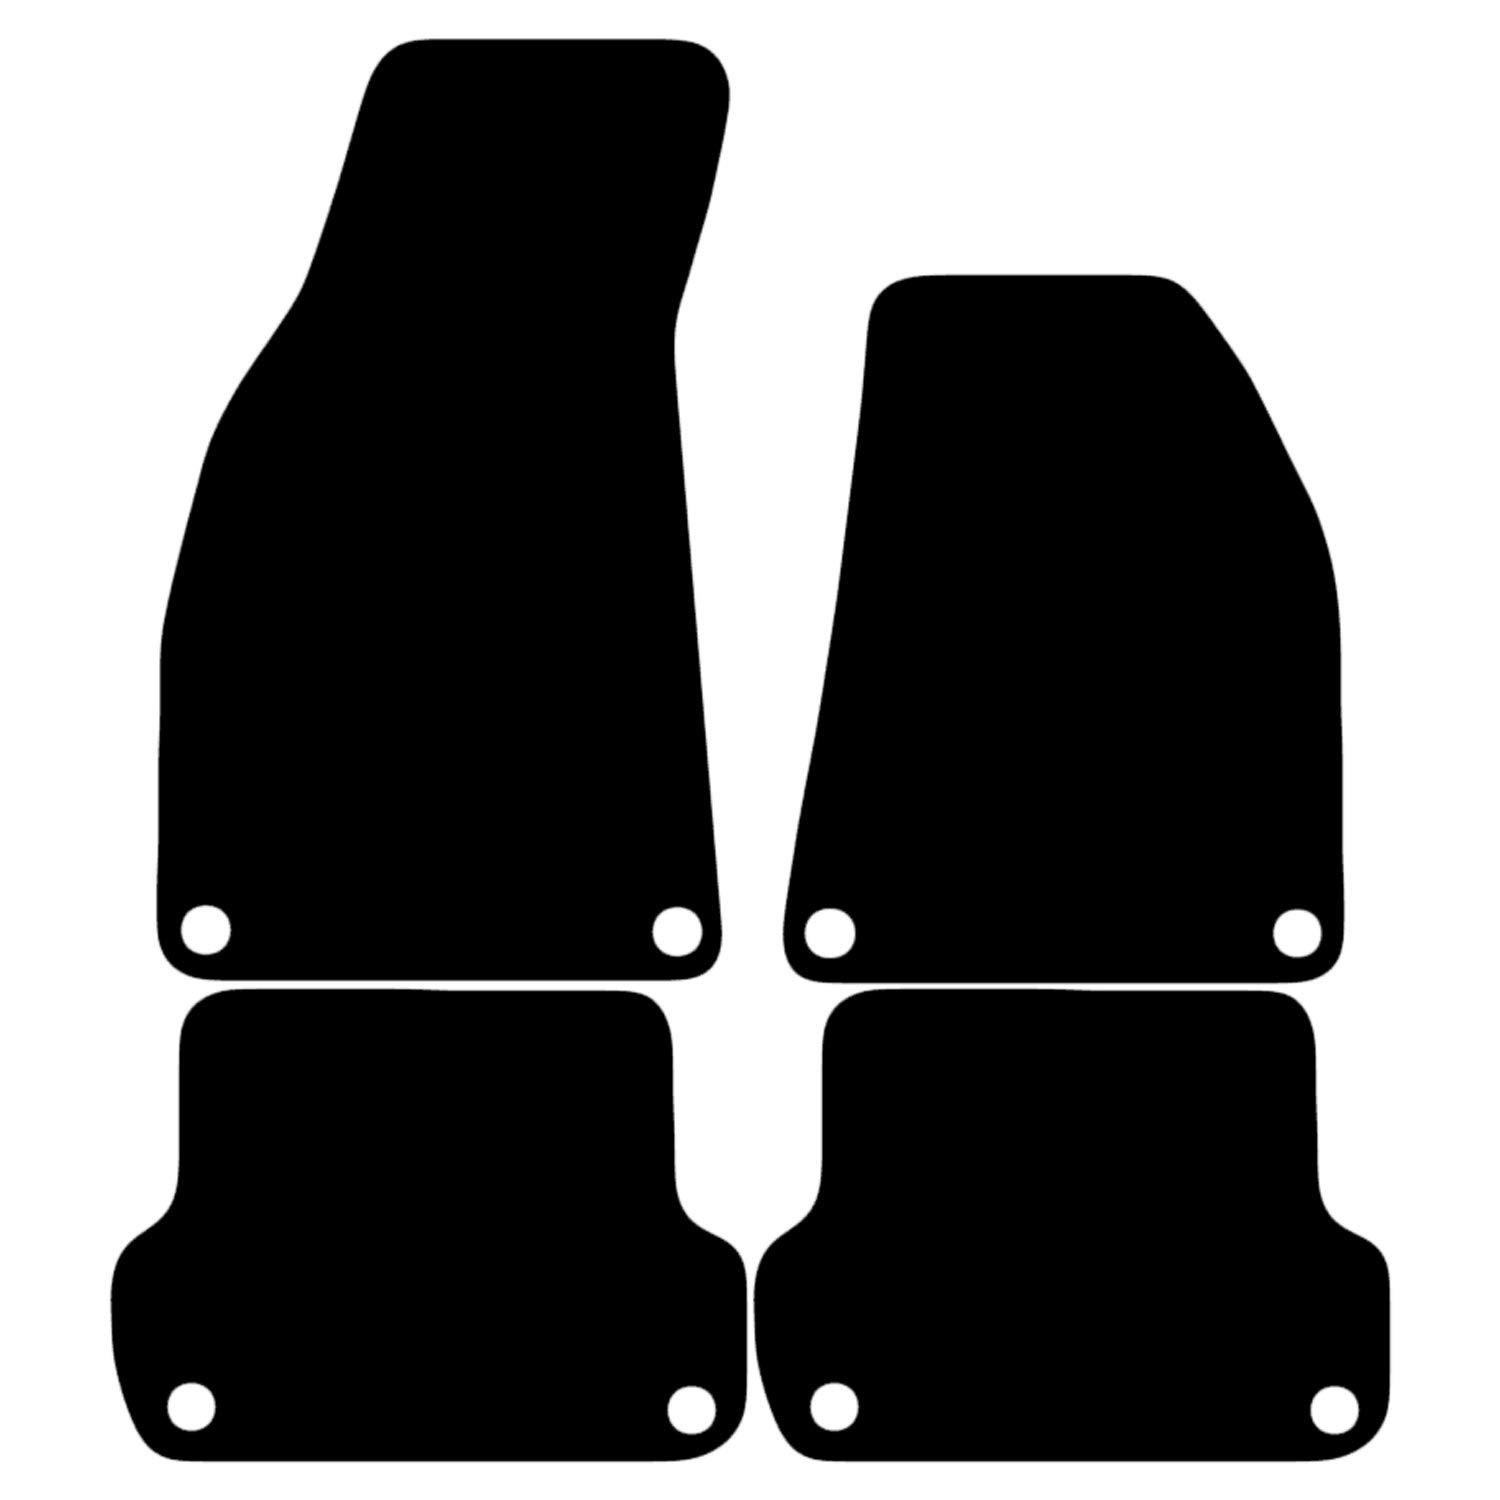 Carsio Tailored Black Carpet Car Mats for A4 B7 2006-2008 - 4 Piece Set with 8 Clips